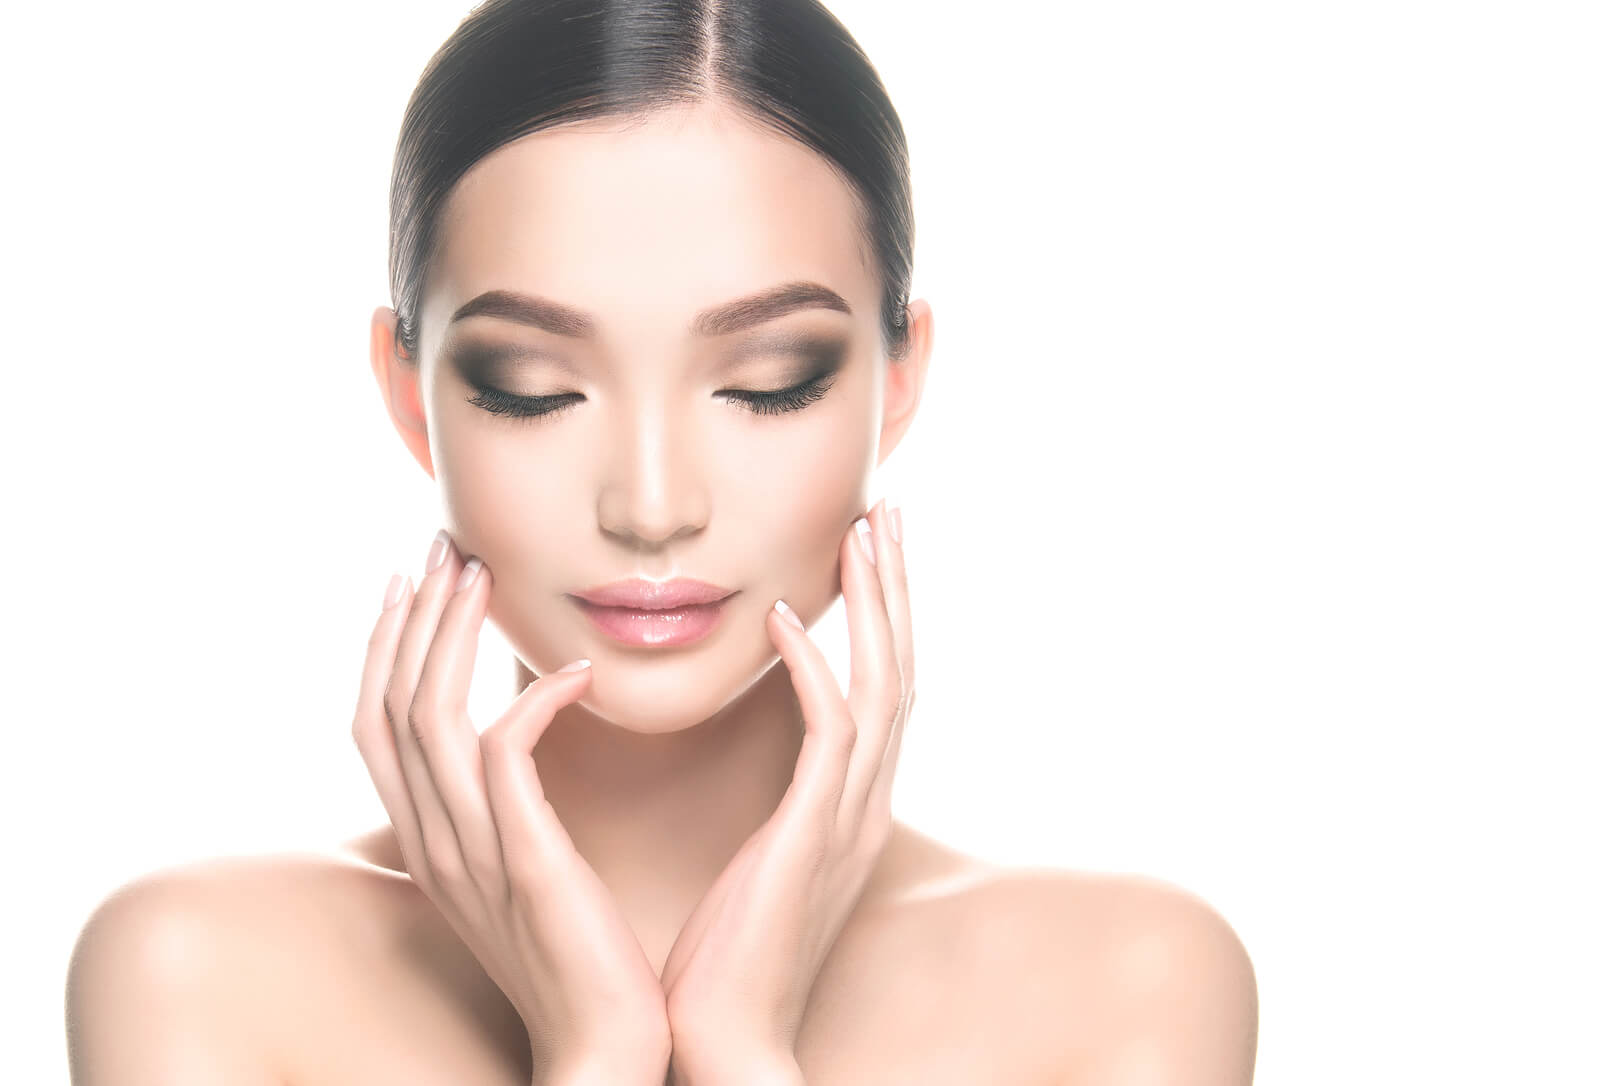 Facial Rejuvenation—Turning Back the Hands of Time Without Surgery